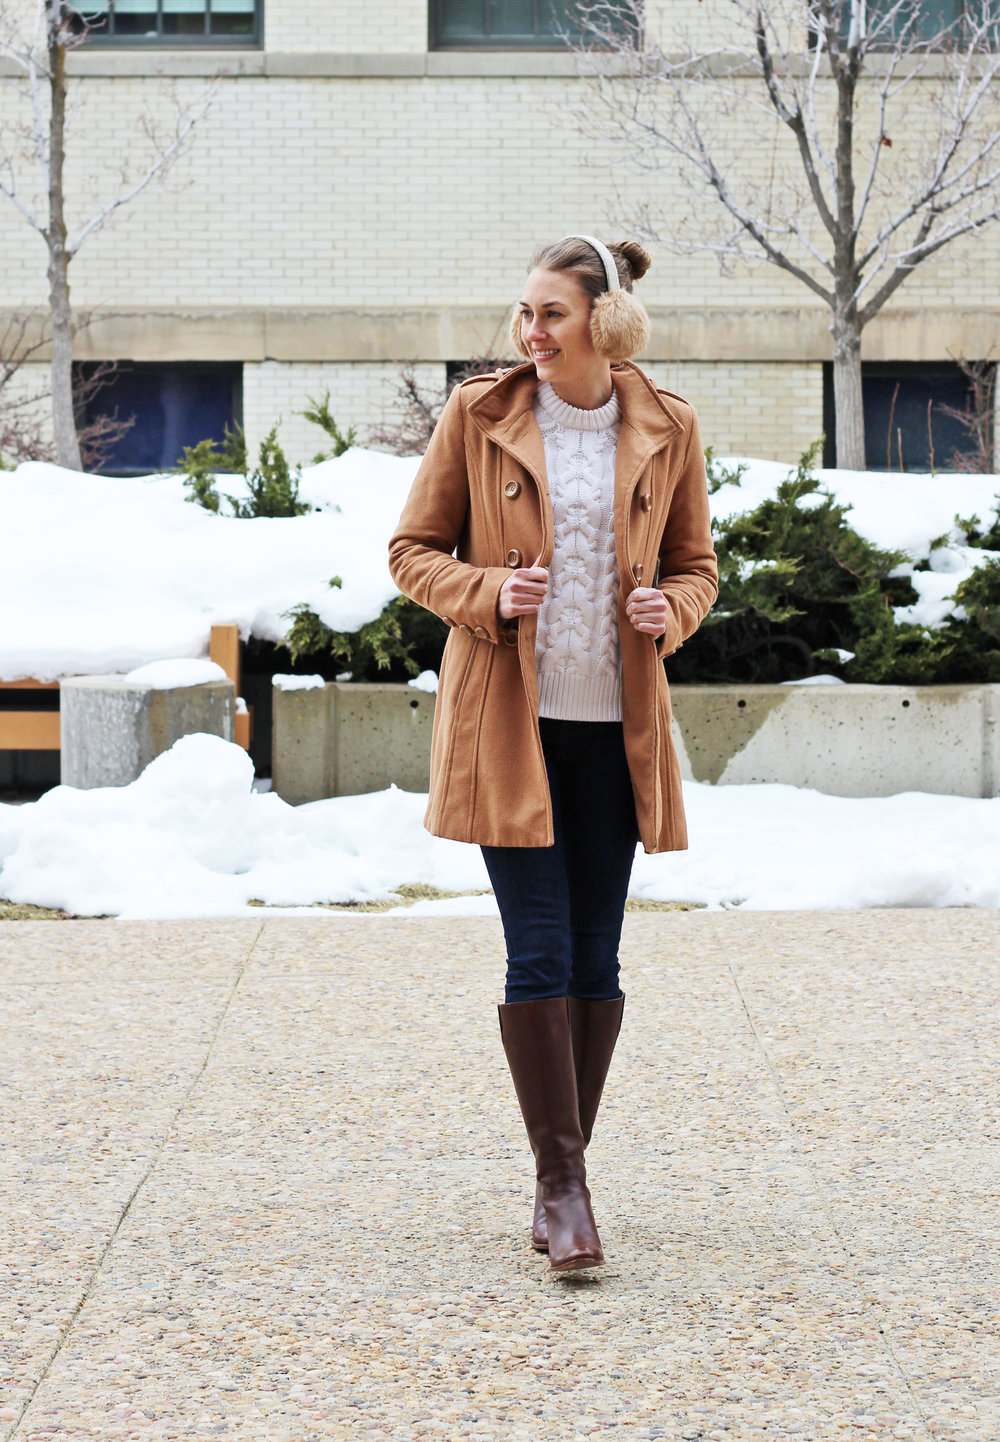 Cold weather classics: camel coat, cable knit sweater, skinny jeans, tall boots — Cotton Cashmere Cat Hair